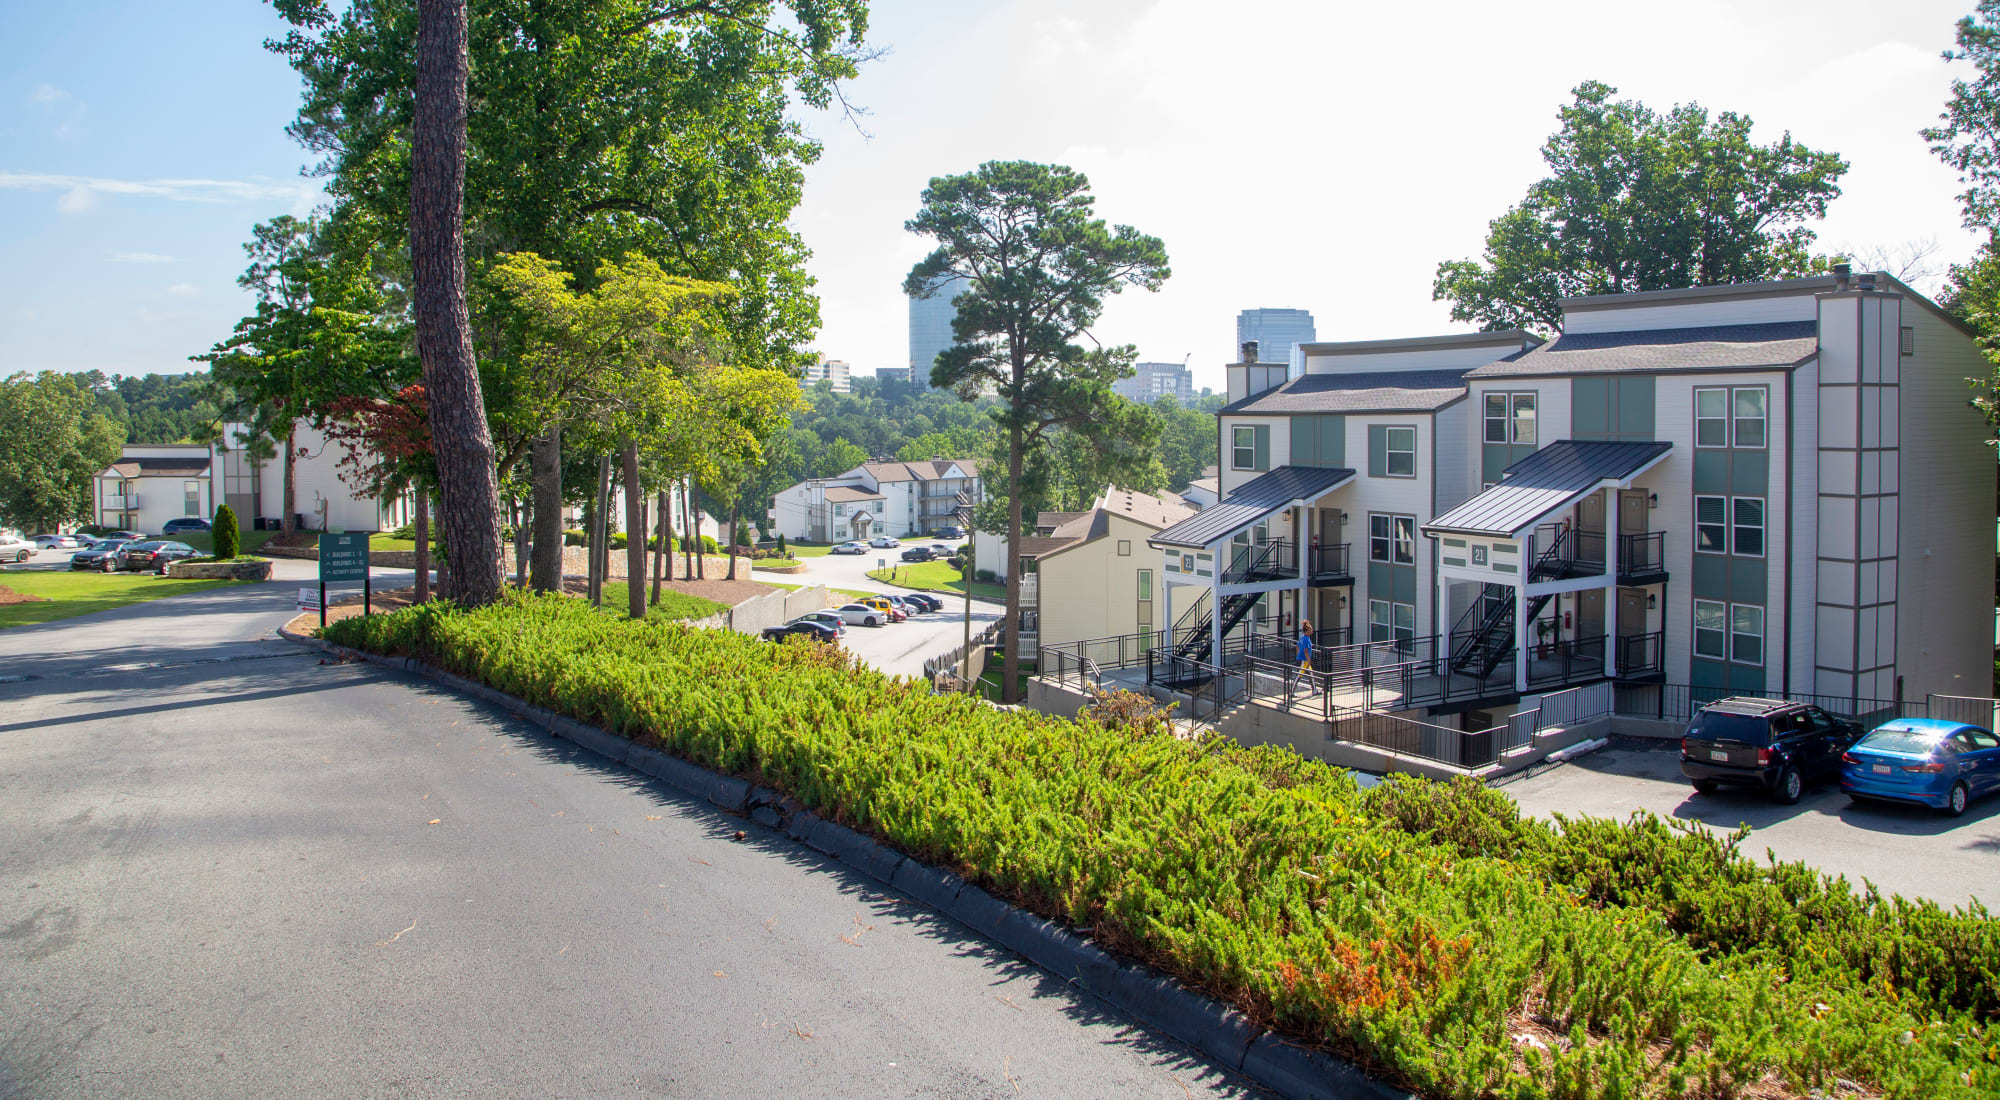 driveway and parking outside a building at Castlegate Property Group in Atlanta, GA